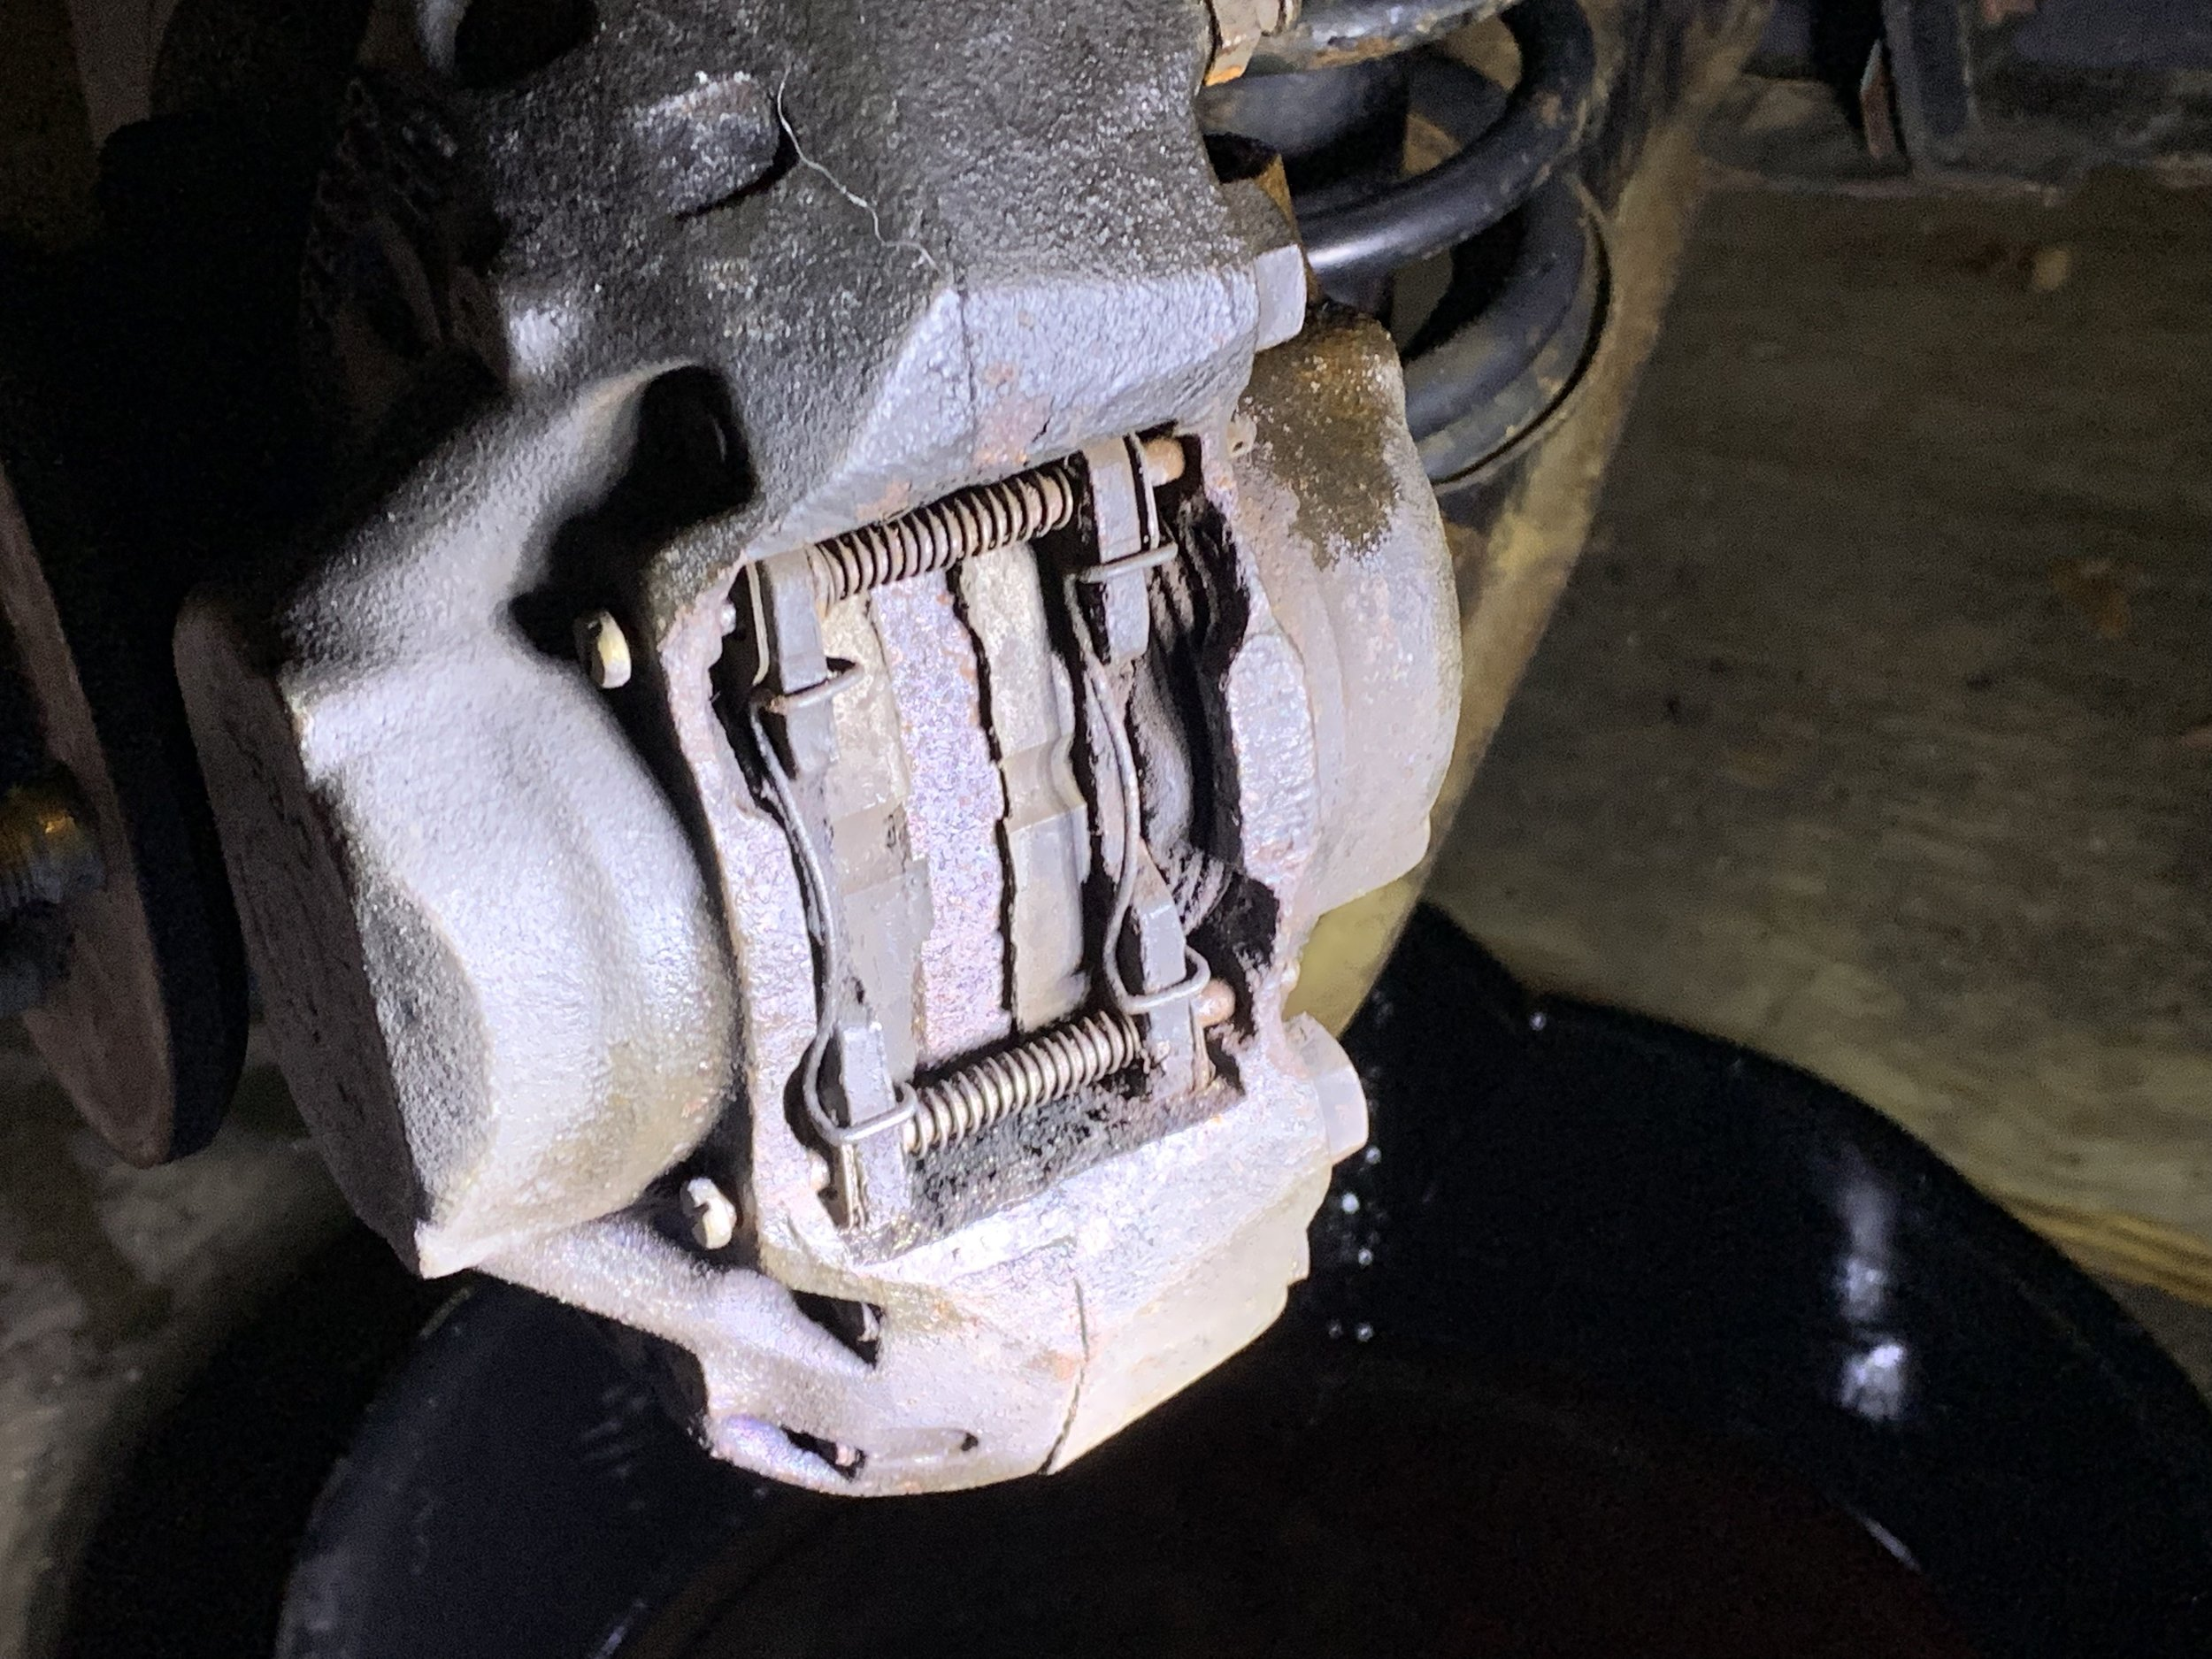 The brake pads still installed in the calipers